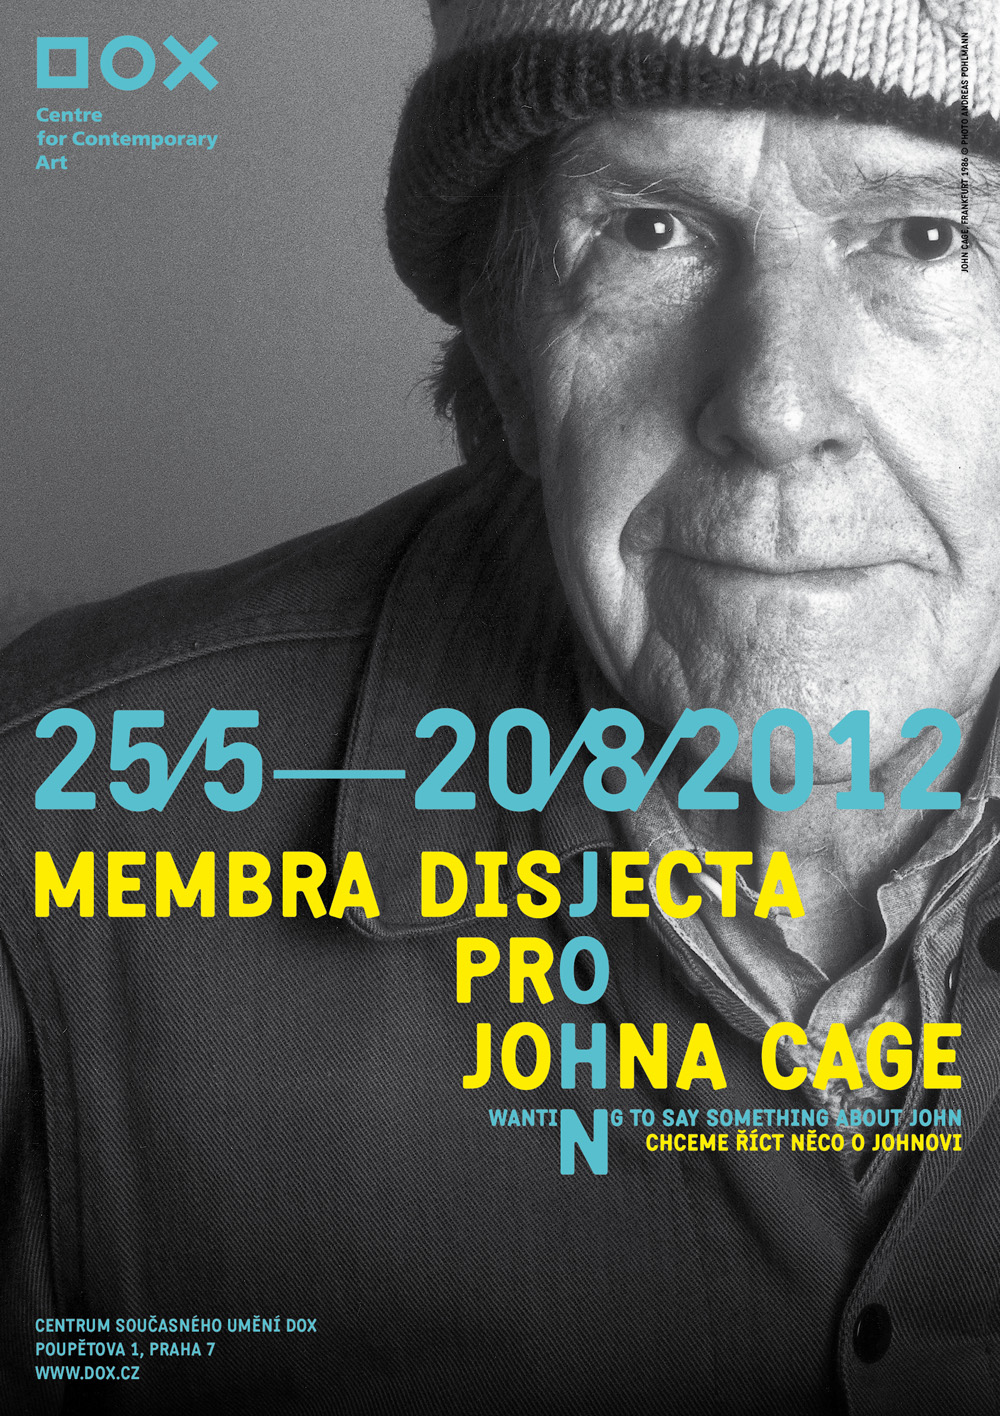 Membra Disjecta for John Cage in Vienna [poster] [space] TONSPUR 51: Sam Ashley [gallery] [detail] - A1_JOHN_CAGE